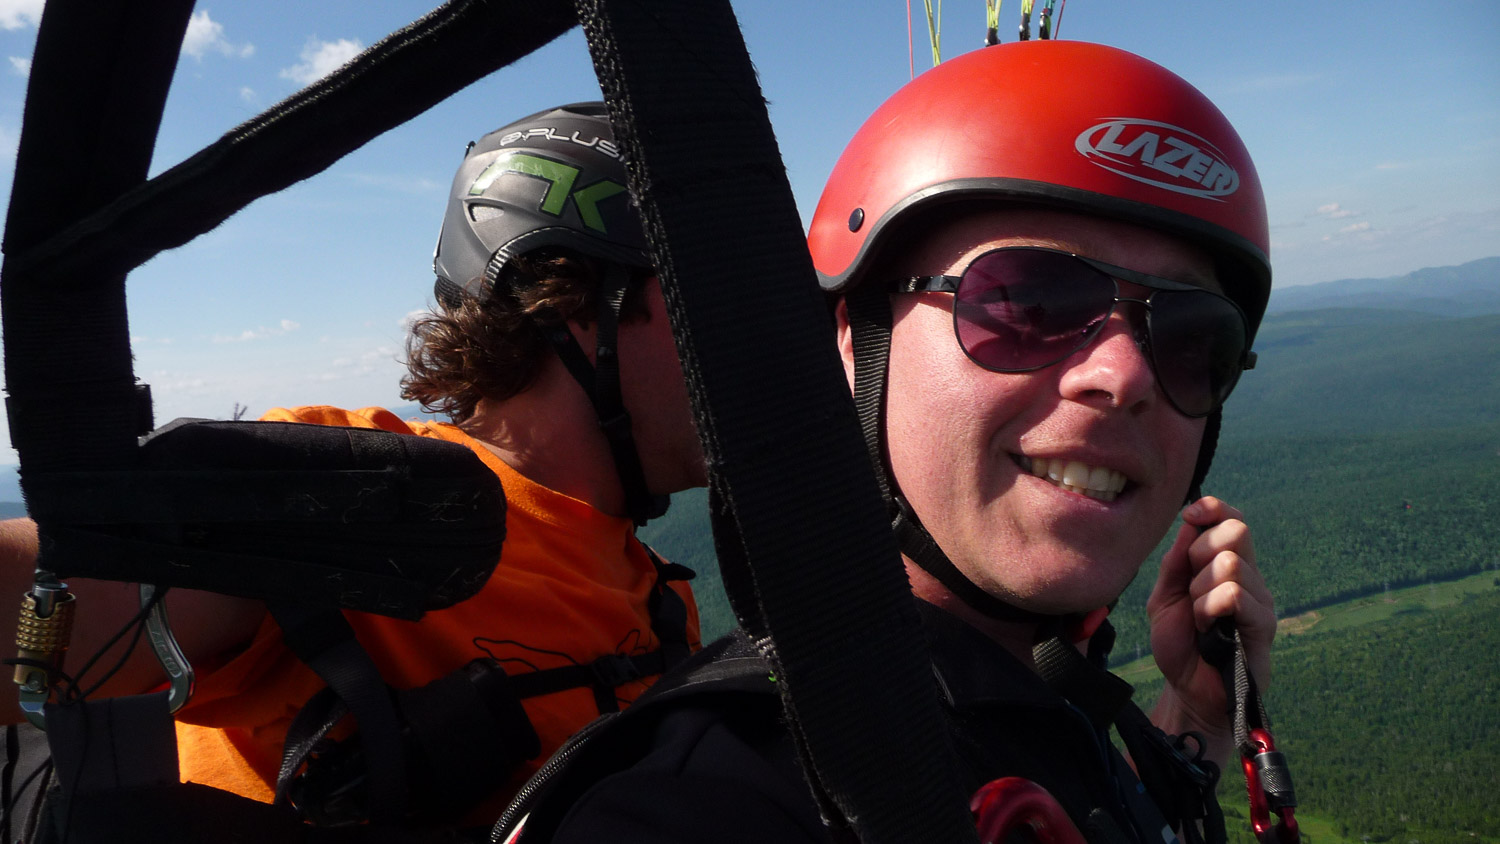 Charles-Emmanuel Brossard paragliding during the filming of Les grands Sentiers on top of Mont Saint-Anne in the Quebec City area